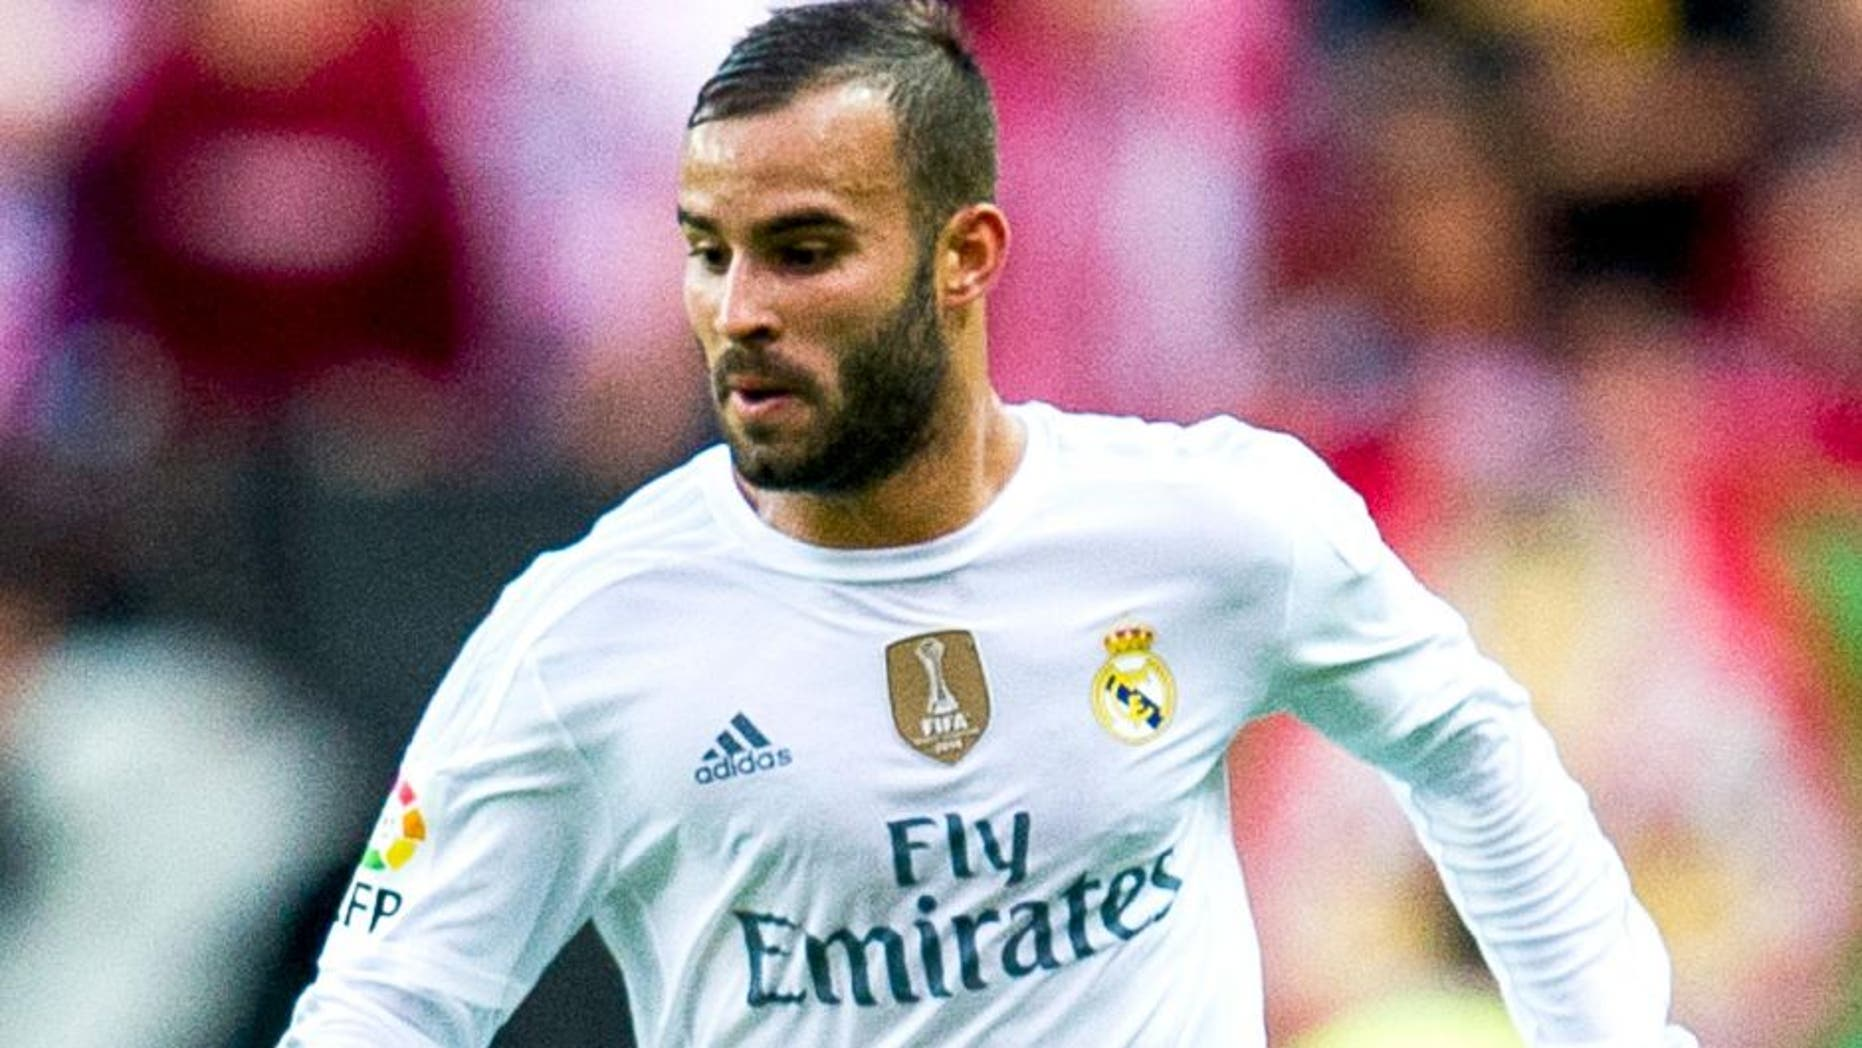 GIJON, SPAIN - AUGUST 23:Jese Rodriguez of Real Madrid controls the ball during the La Liga match between Sporting Gijon and Real Madrid at Estadio El Molinon on August 23, 2015 in Gijon, Spain. (Photo by Juan Manuel Serrano Arce/Getty Images)